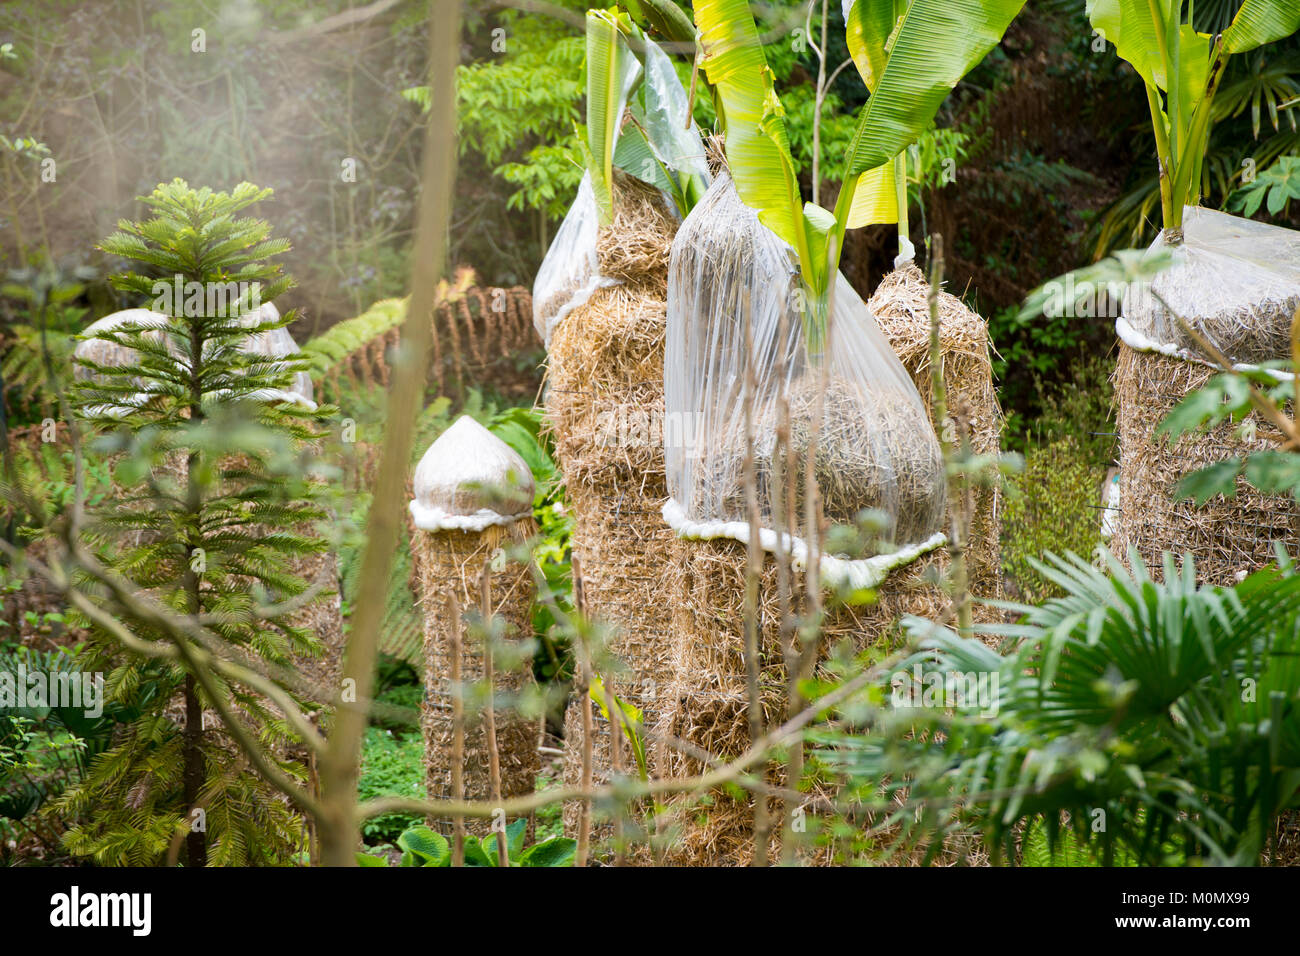 Banana Palm trees with crowns covered in fleece and straw to protect from winter weather - Stock Image